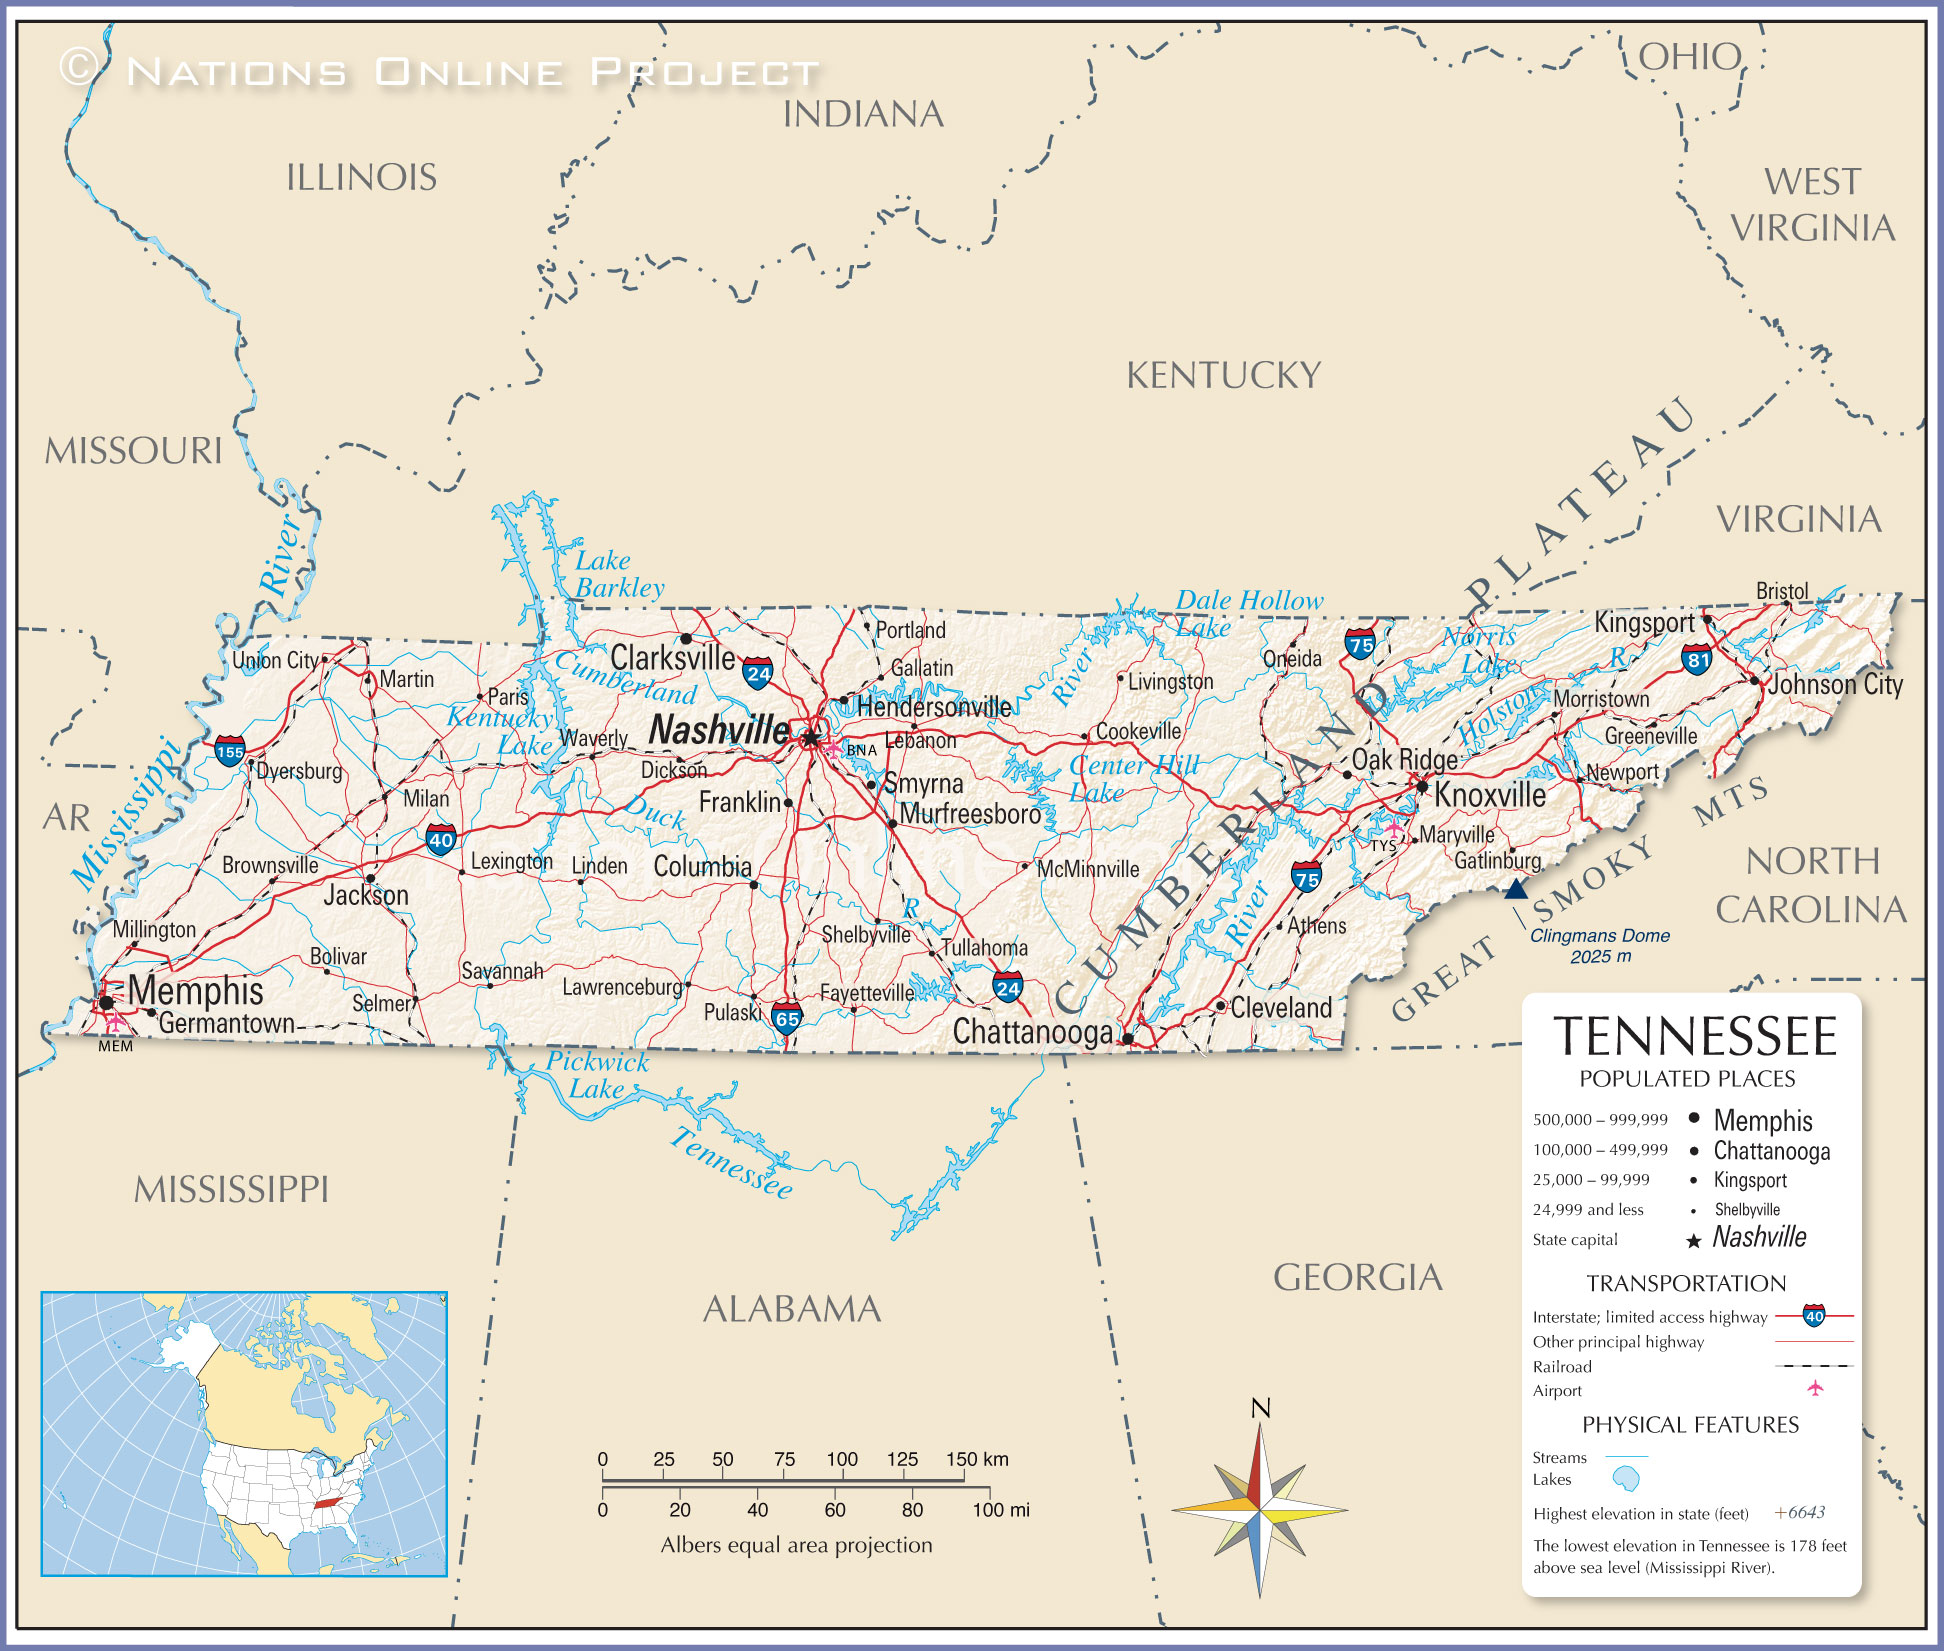 Tennessee PowerPoint Map- Counties